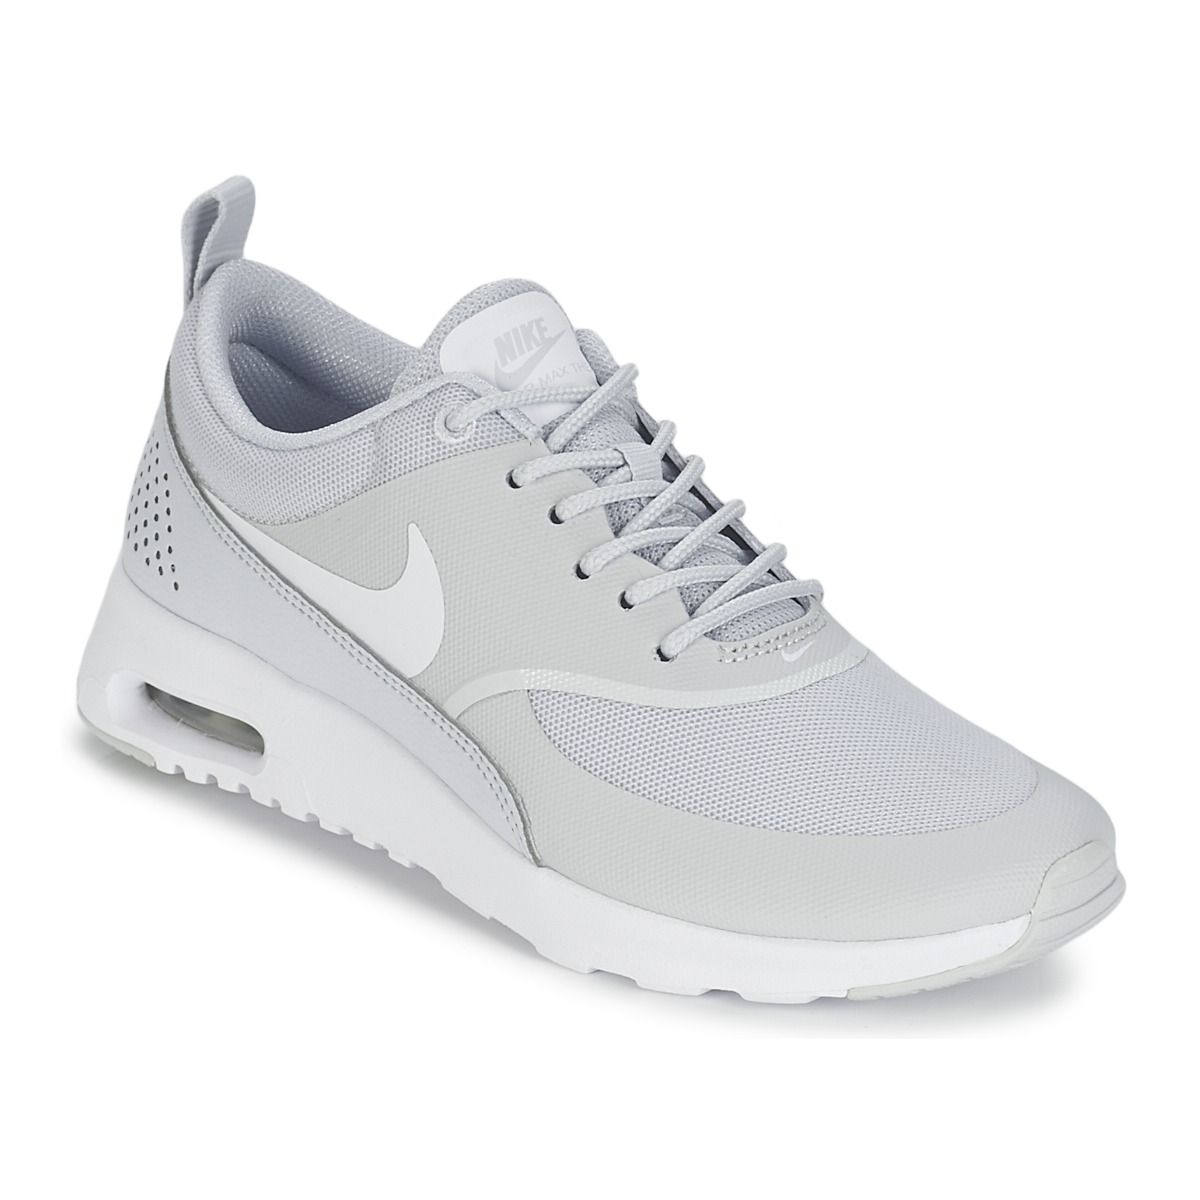 wholesale dealer 9d212 48089 Baskets basses Nike AIR MAX THEA W Gris prix promo Baskets Femme Spartoo  119.00 €